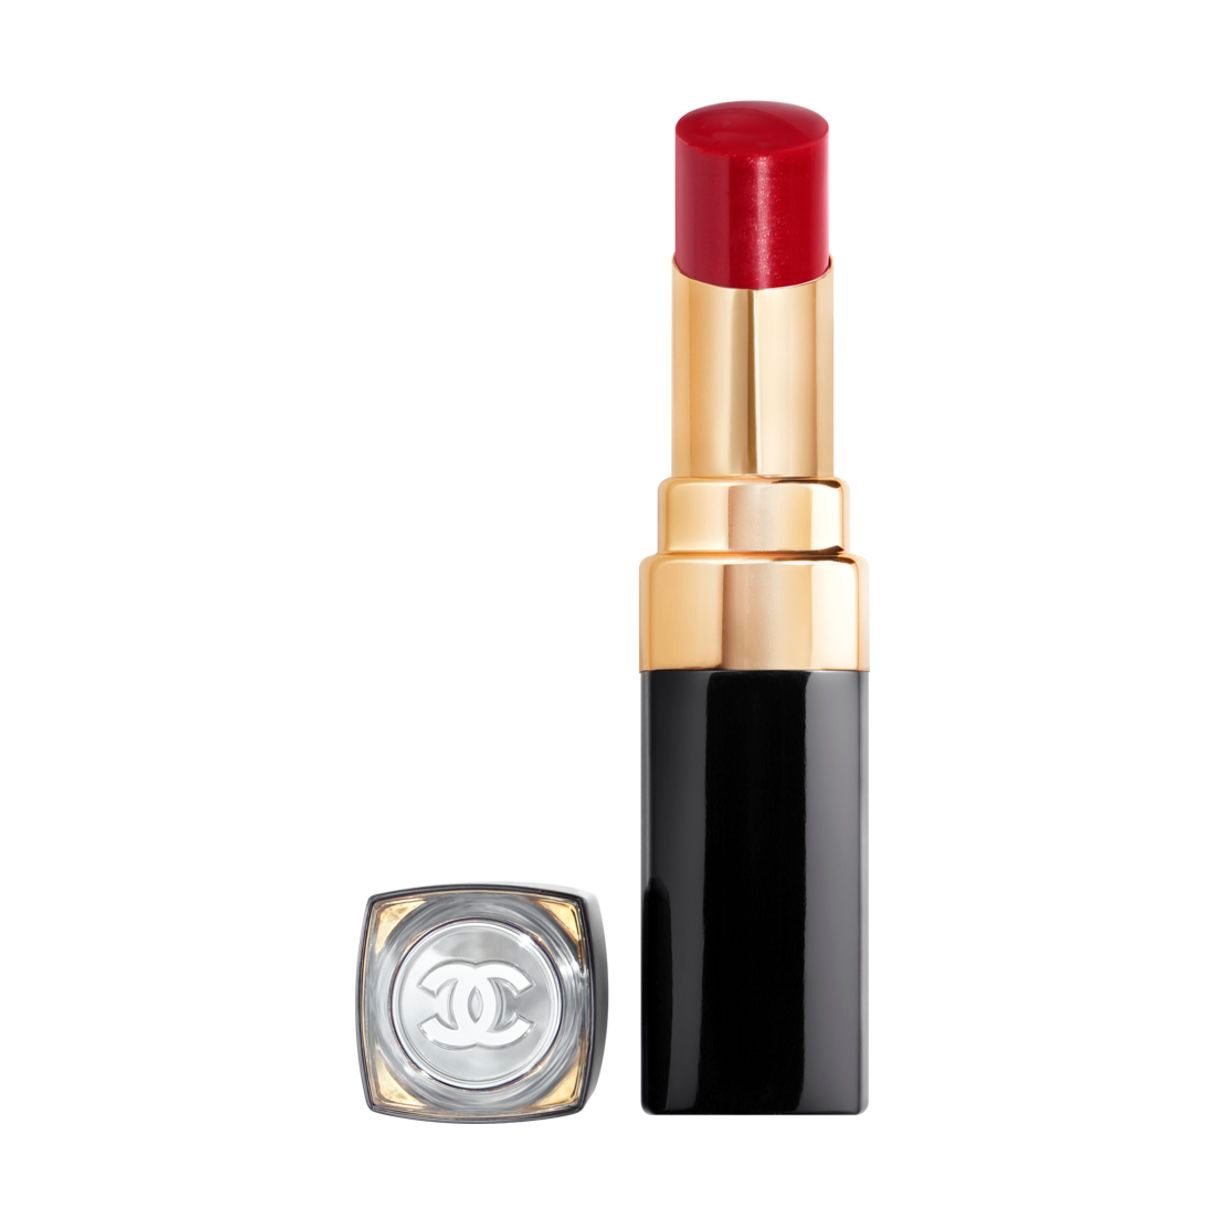 ROUGE COCO FLASH COLOUR, SHINE, INTENSITY IN A FLASH 92 - AMOUR